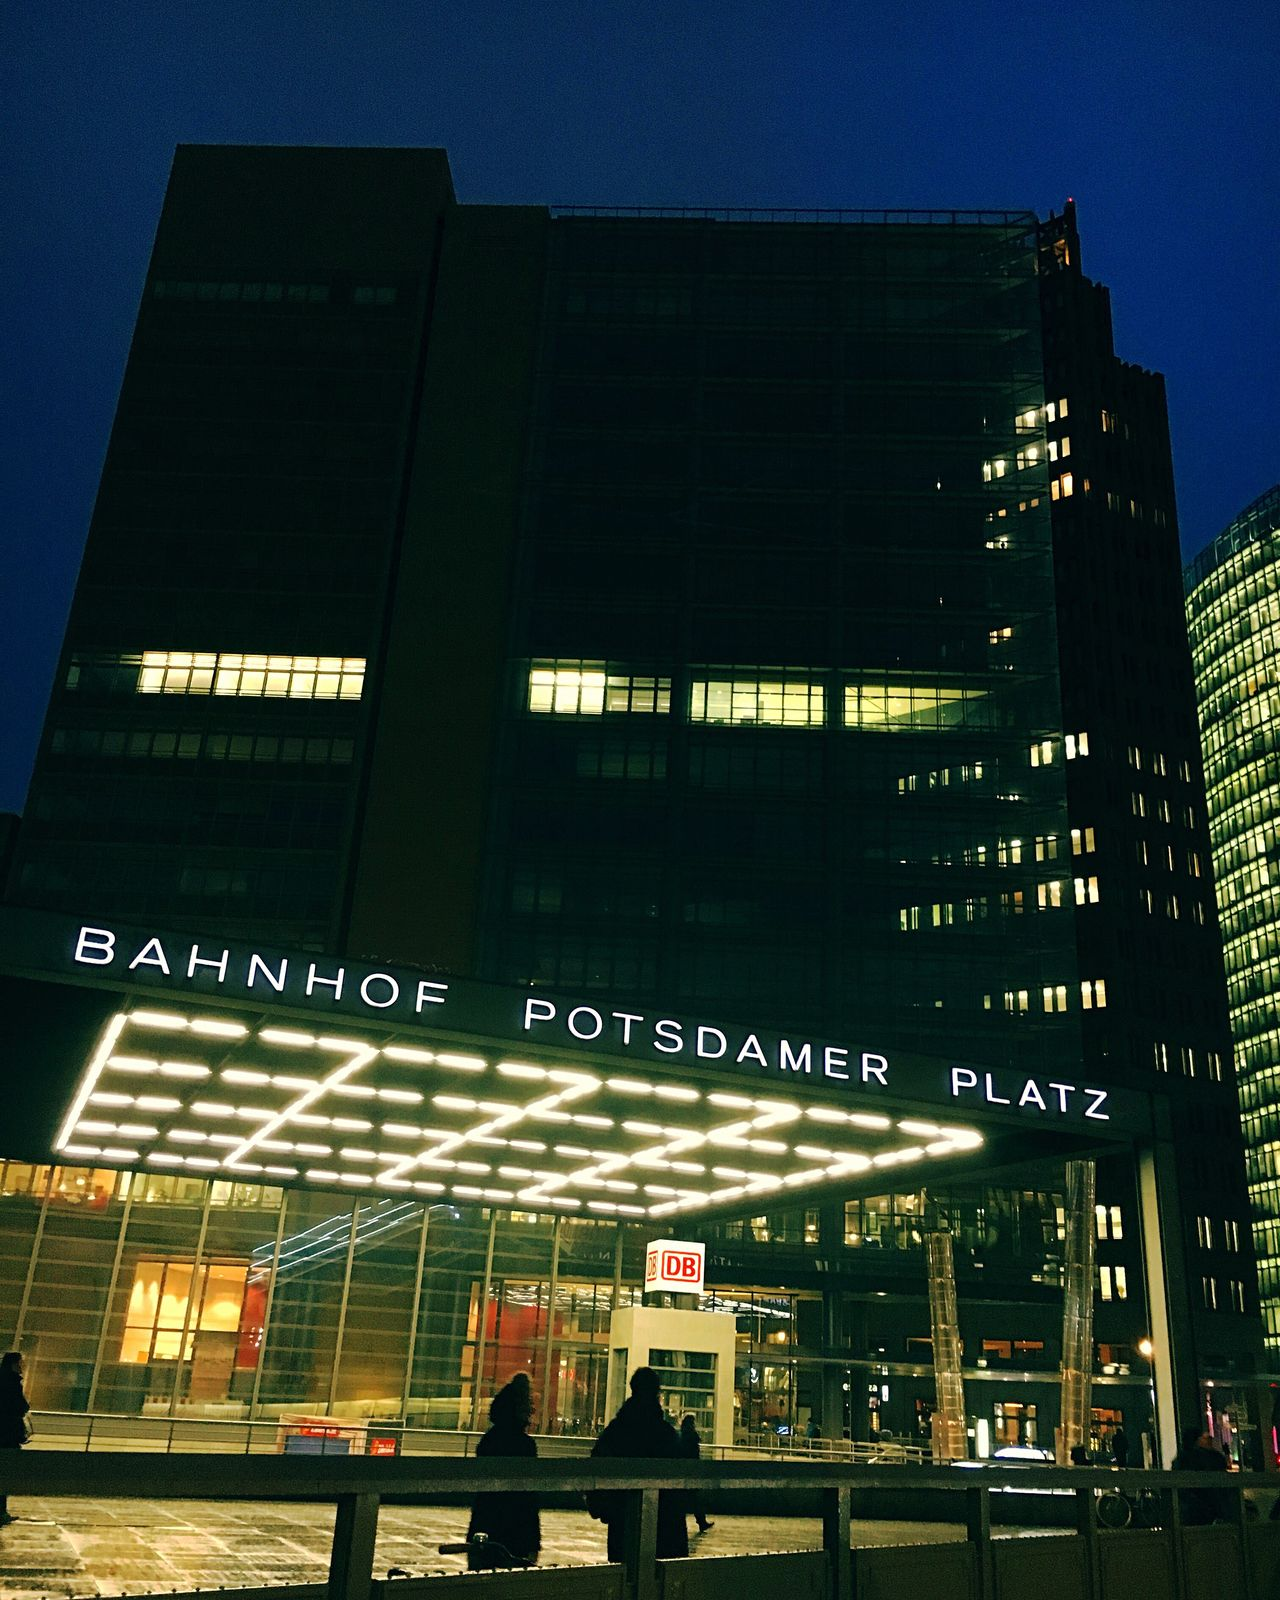 Built Structure Architecture Building Exterior City Outdoors Text City Life Low Angle View Communication Illuminated Night Skyscraper Potsdamer Platz Famous Place Famous Places Berlin